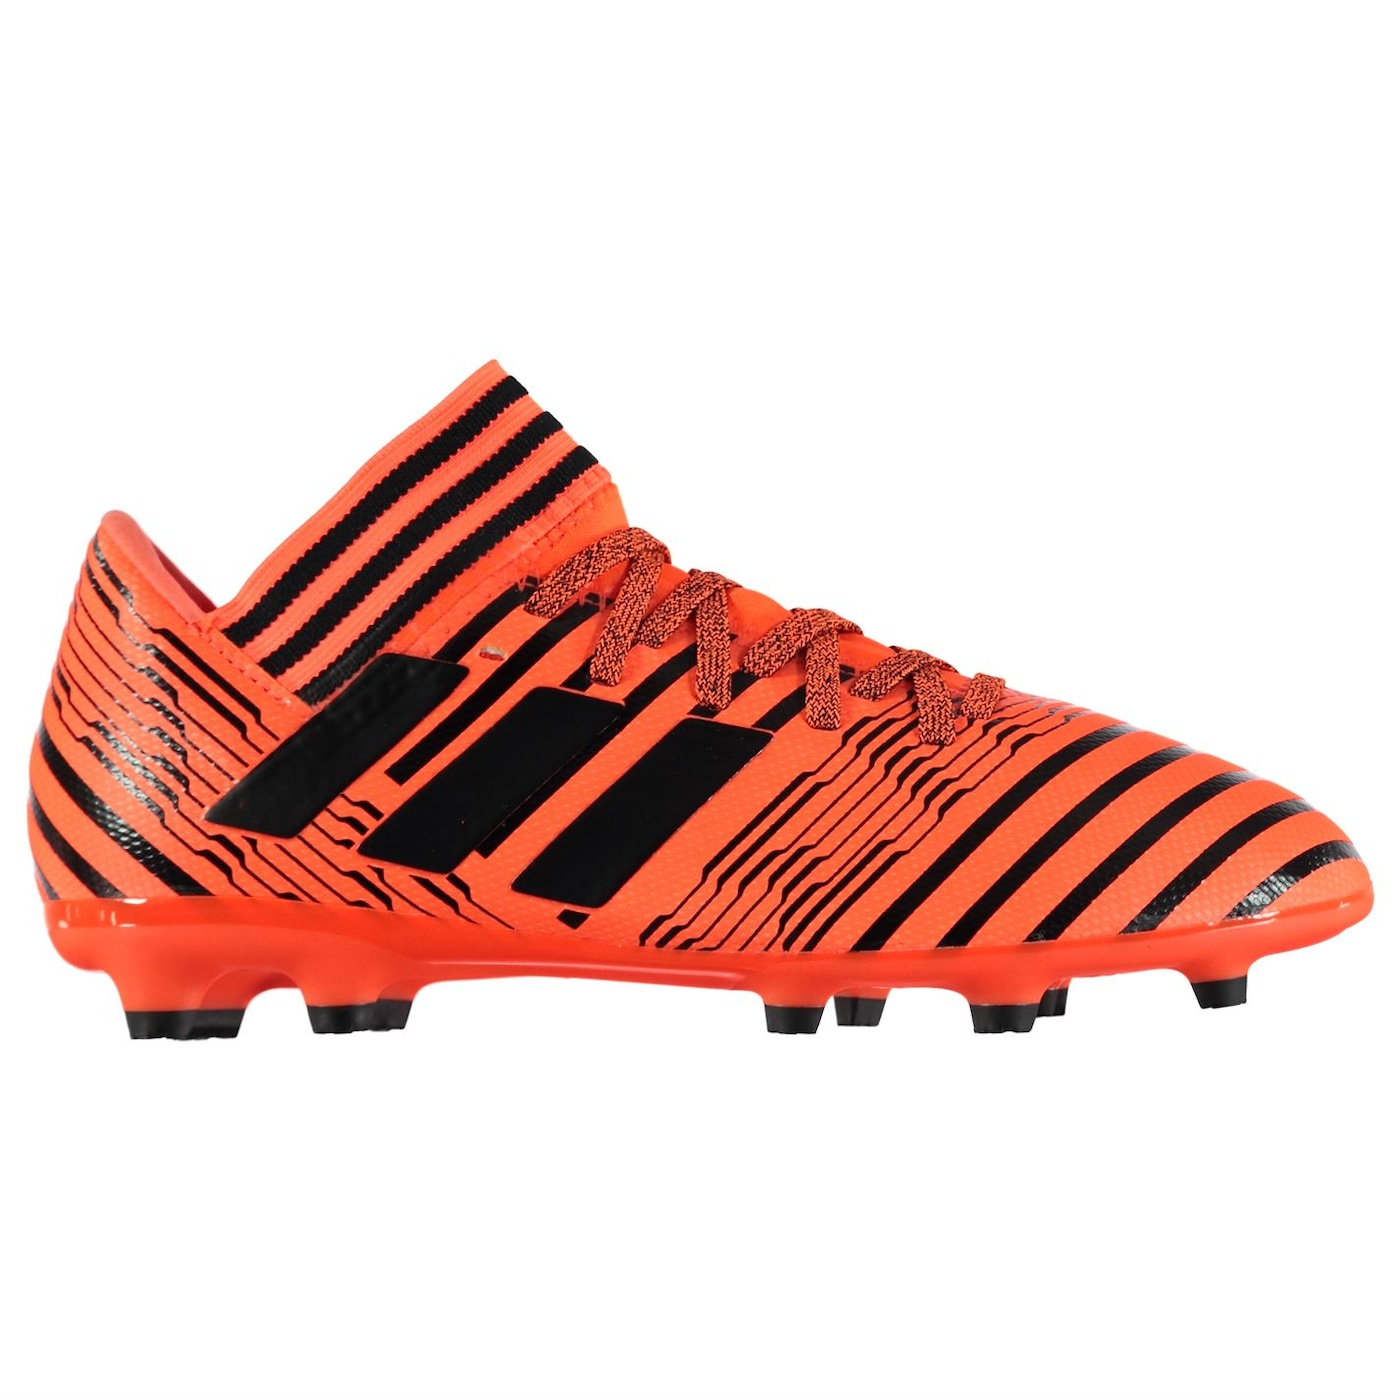 Adidas Nemeziz 17.3 FG Junior Football Boots